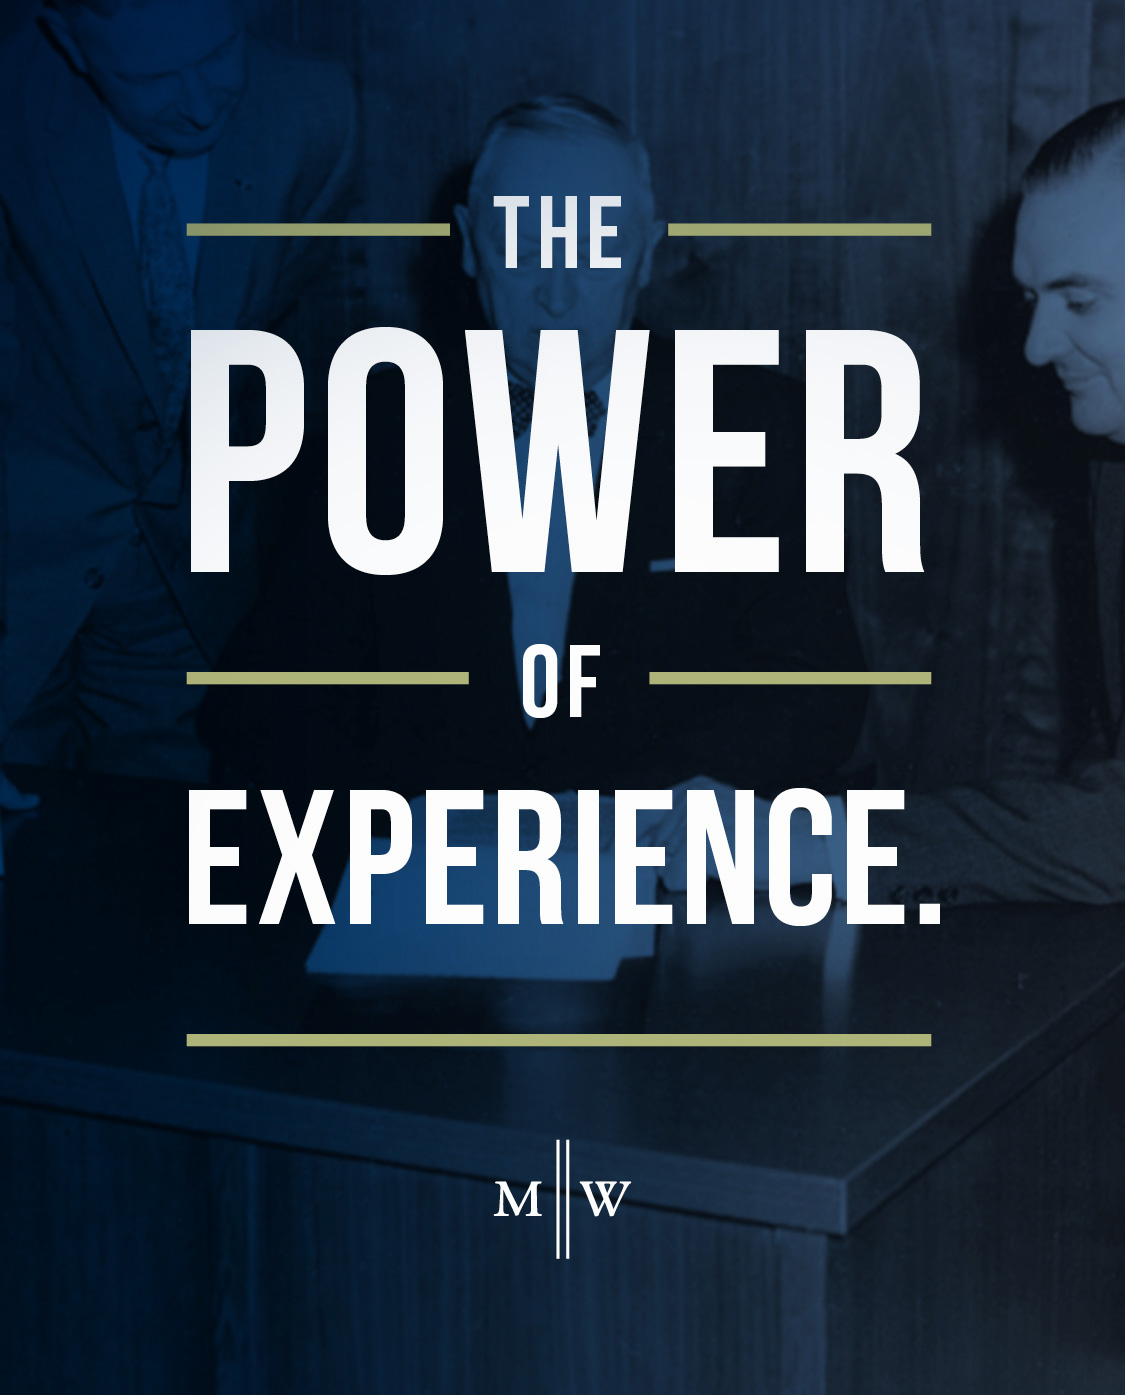 The Power of Experience